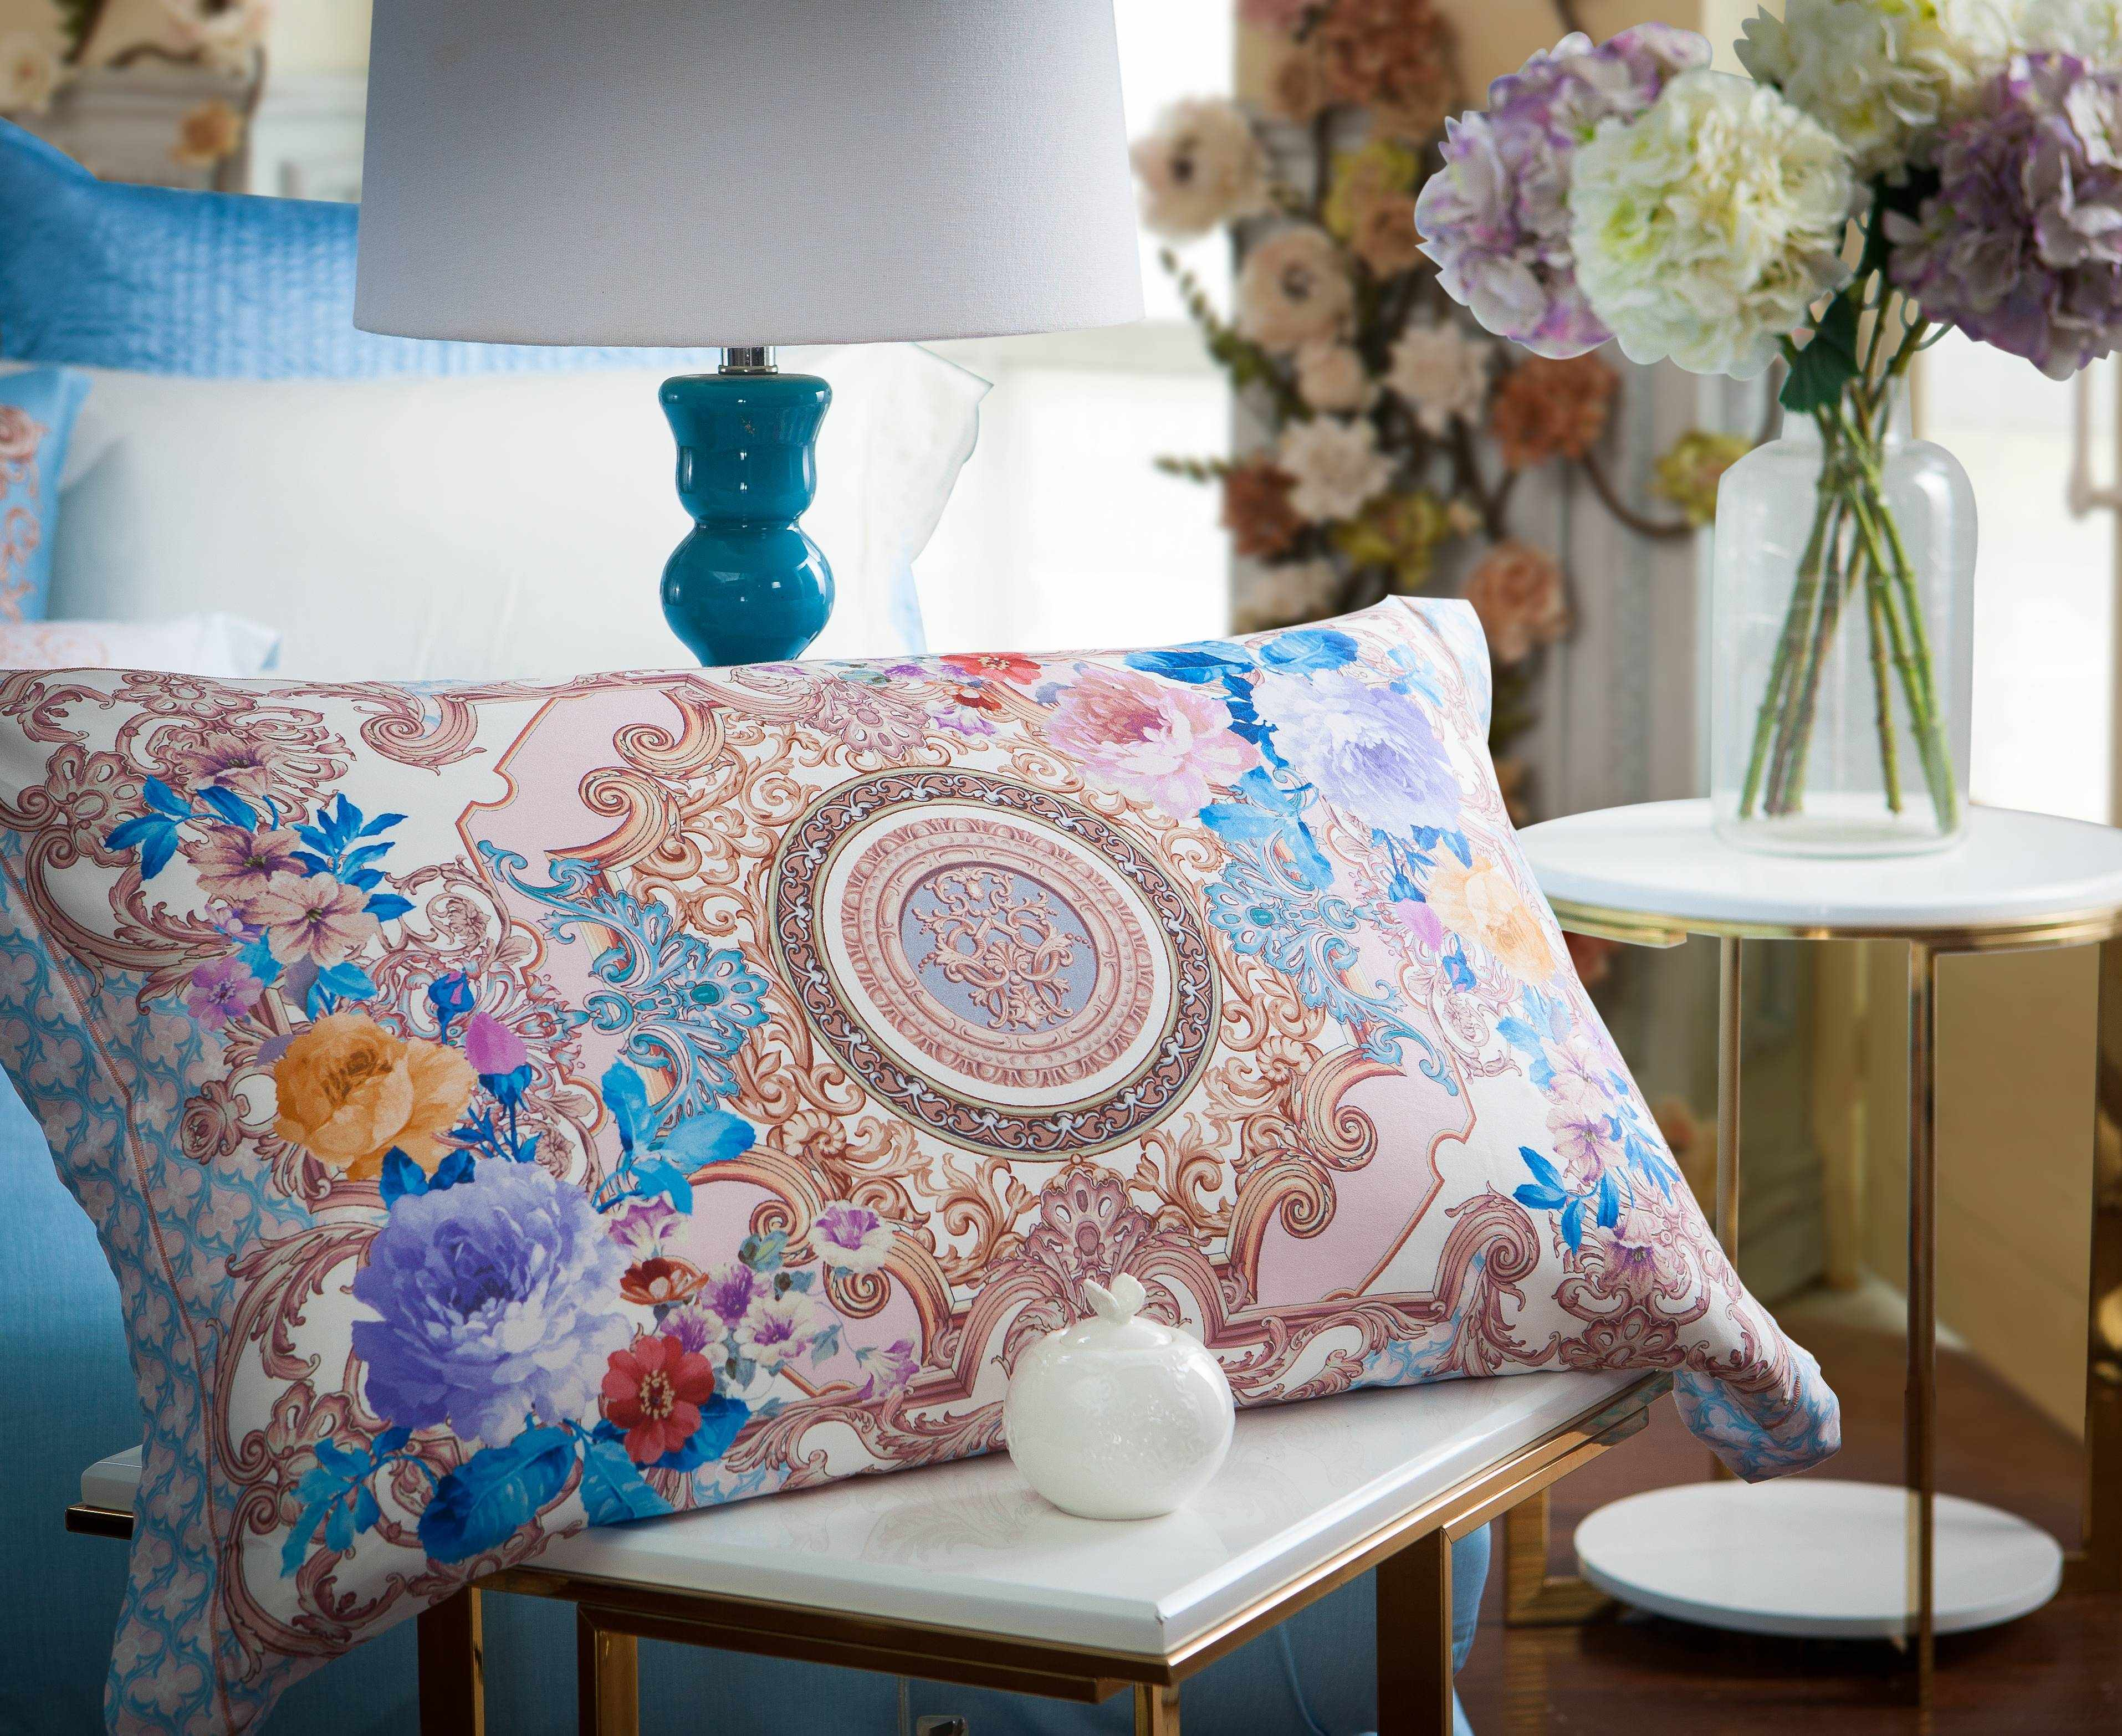 Daphne Digital Printing Bedding Long-staple Cotton 6896 100% Cotton Printed image28